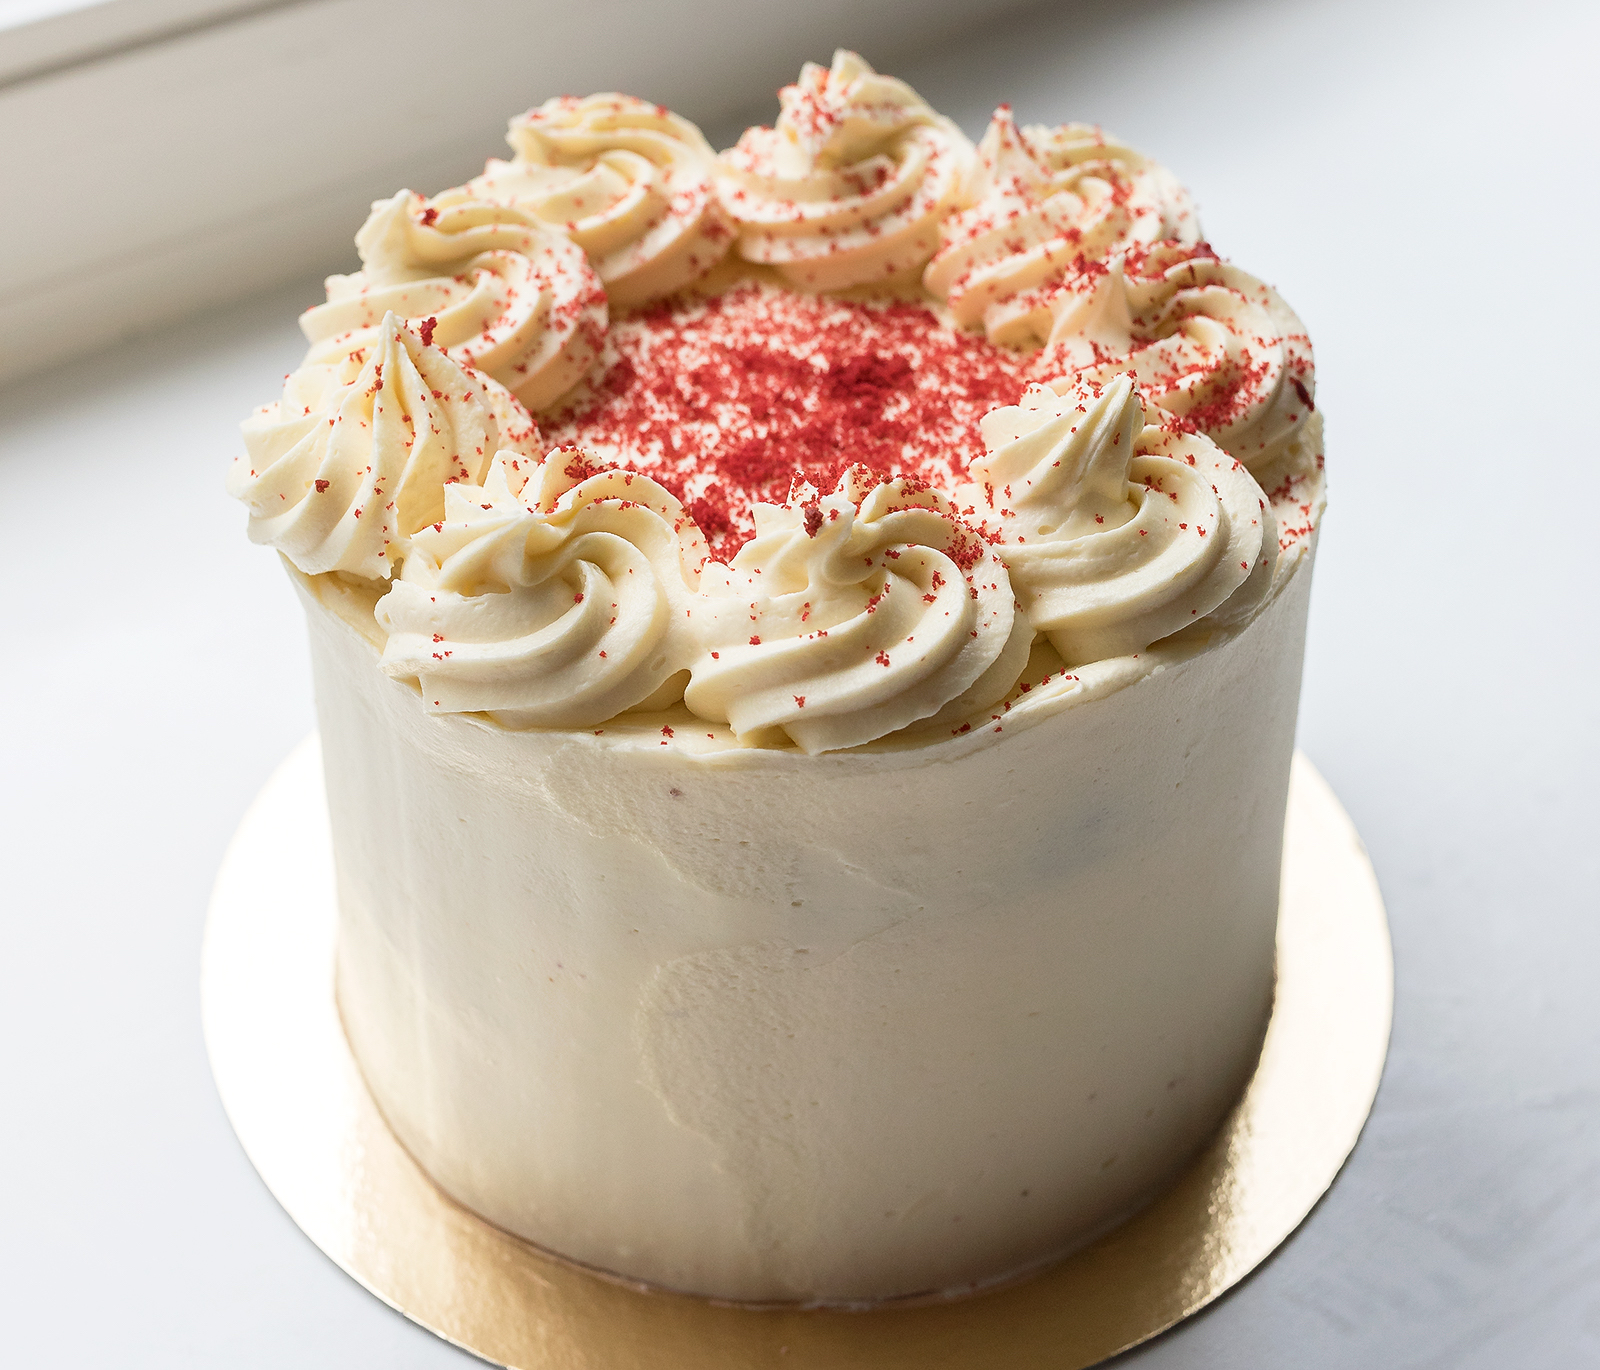 Red Velvet Cake - One of our most special cakes is the Red Velvet cake, it serves up to 20 people and costs 59,-. This price includes a tall cake box.